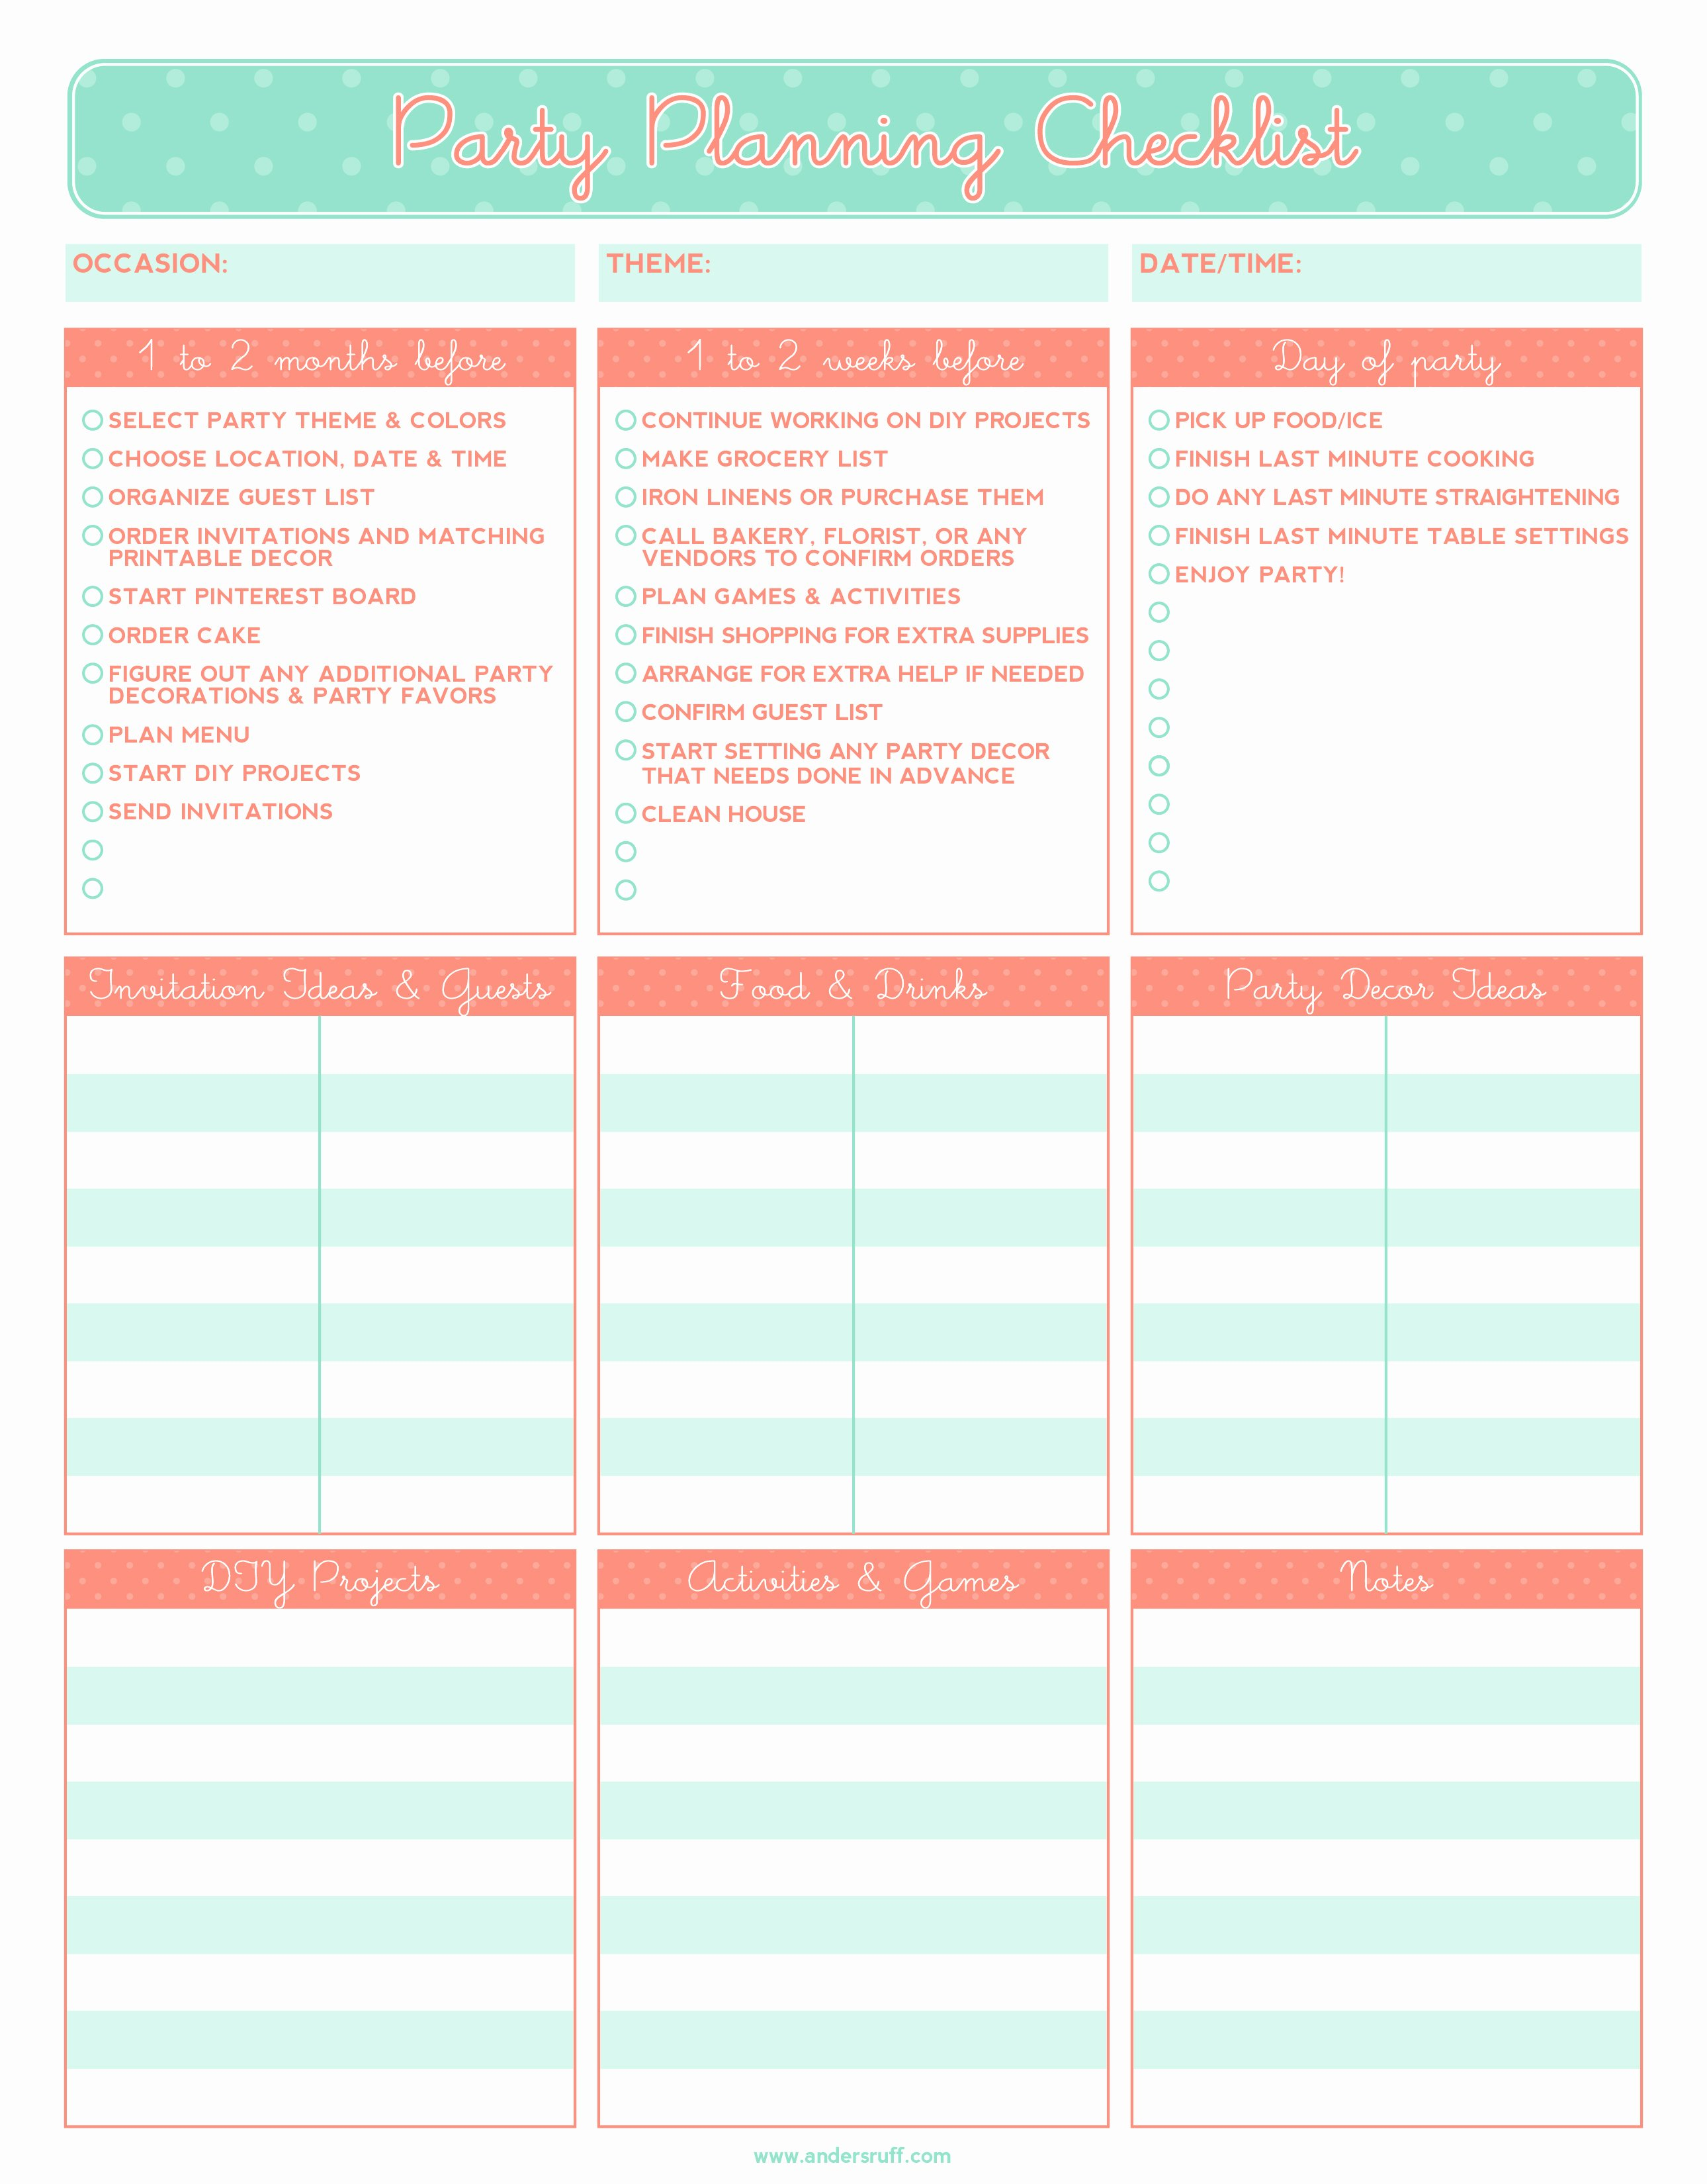 Event Planning Checklist Template Excel Elegant 5 Party Planning Templates Excel Xlts